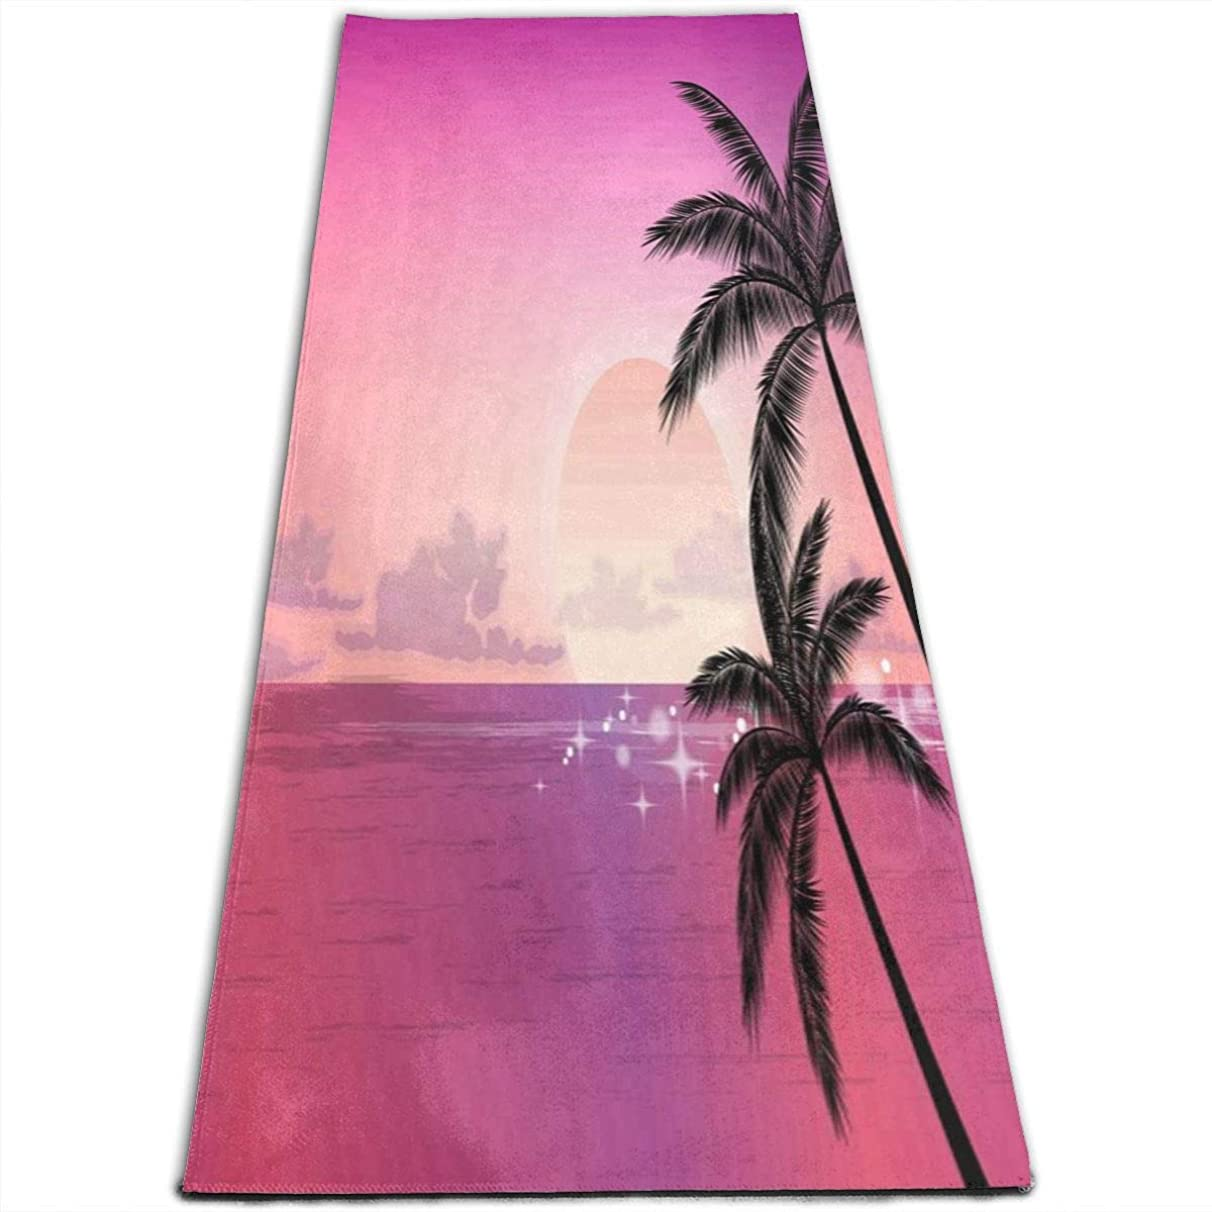 EJudge Yoga Mat Beautiful Sunset Palm Tree Cool 1/4-Inch Thick Sports Mats for Pilates, Fitness & Workout